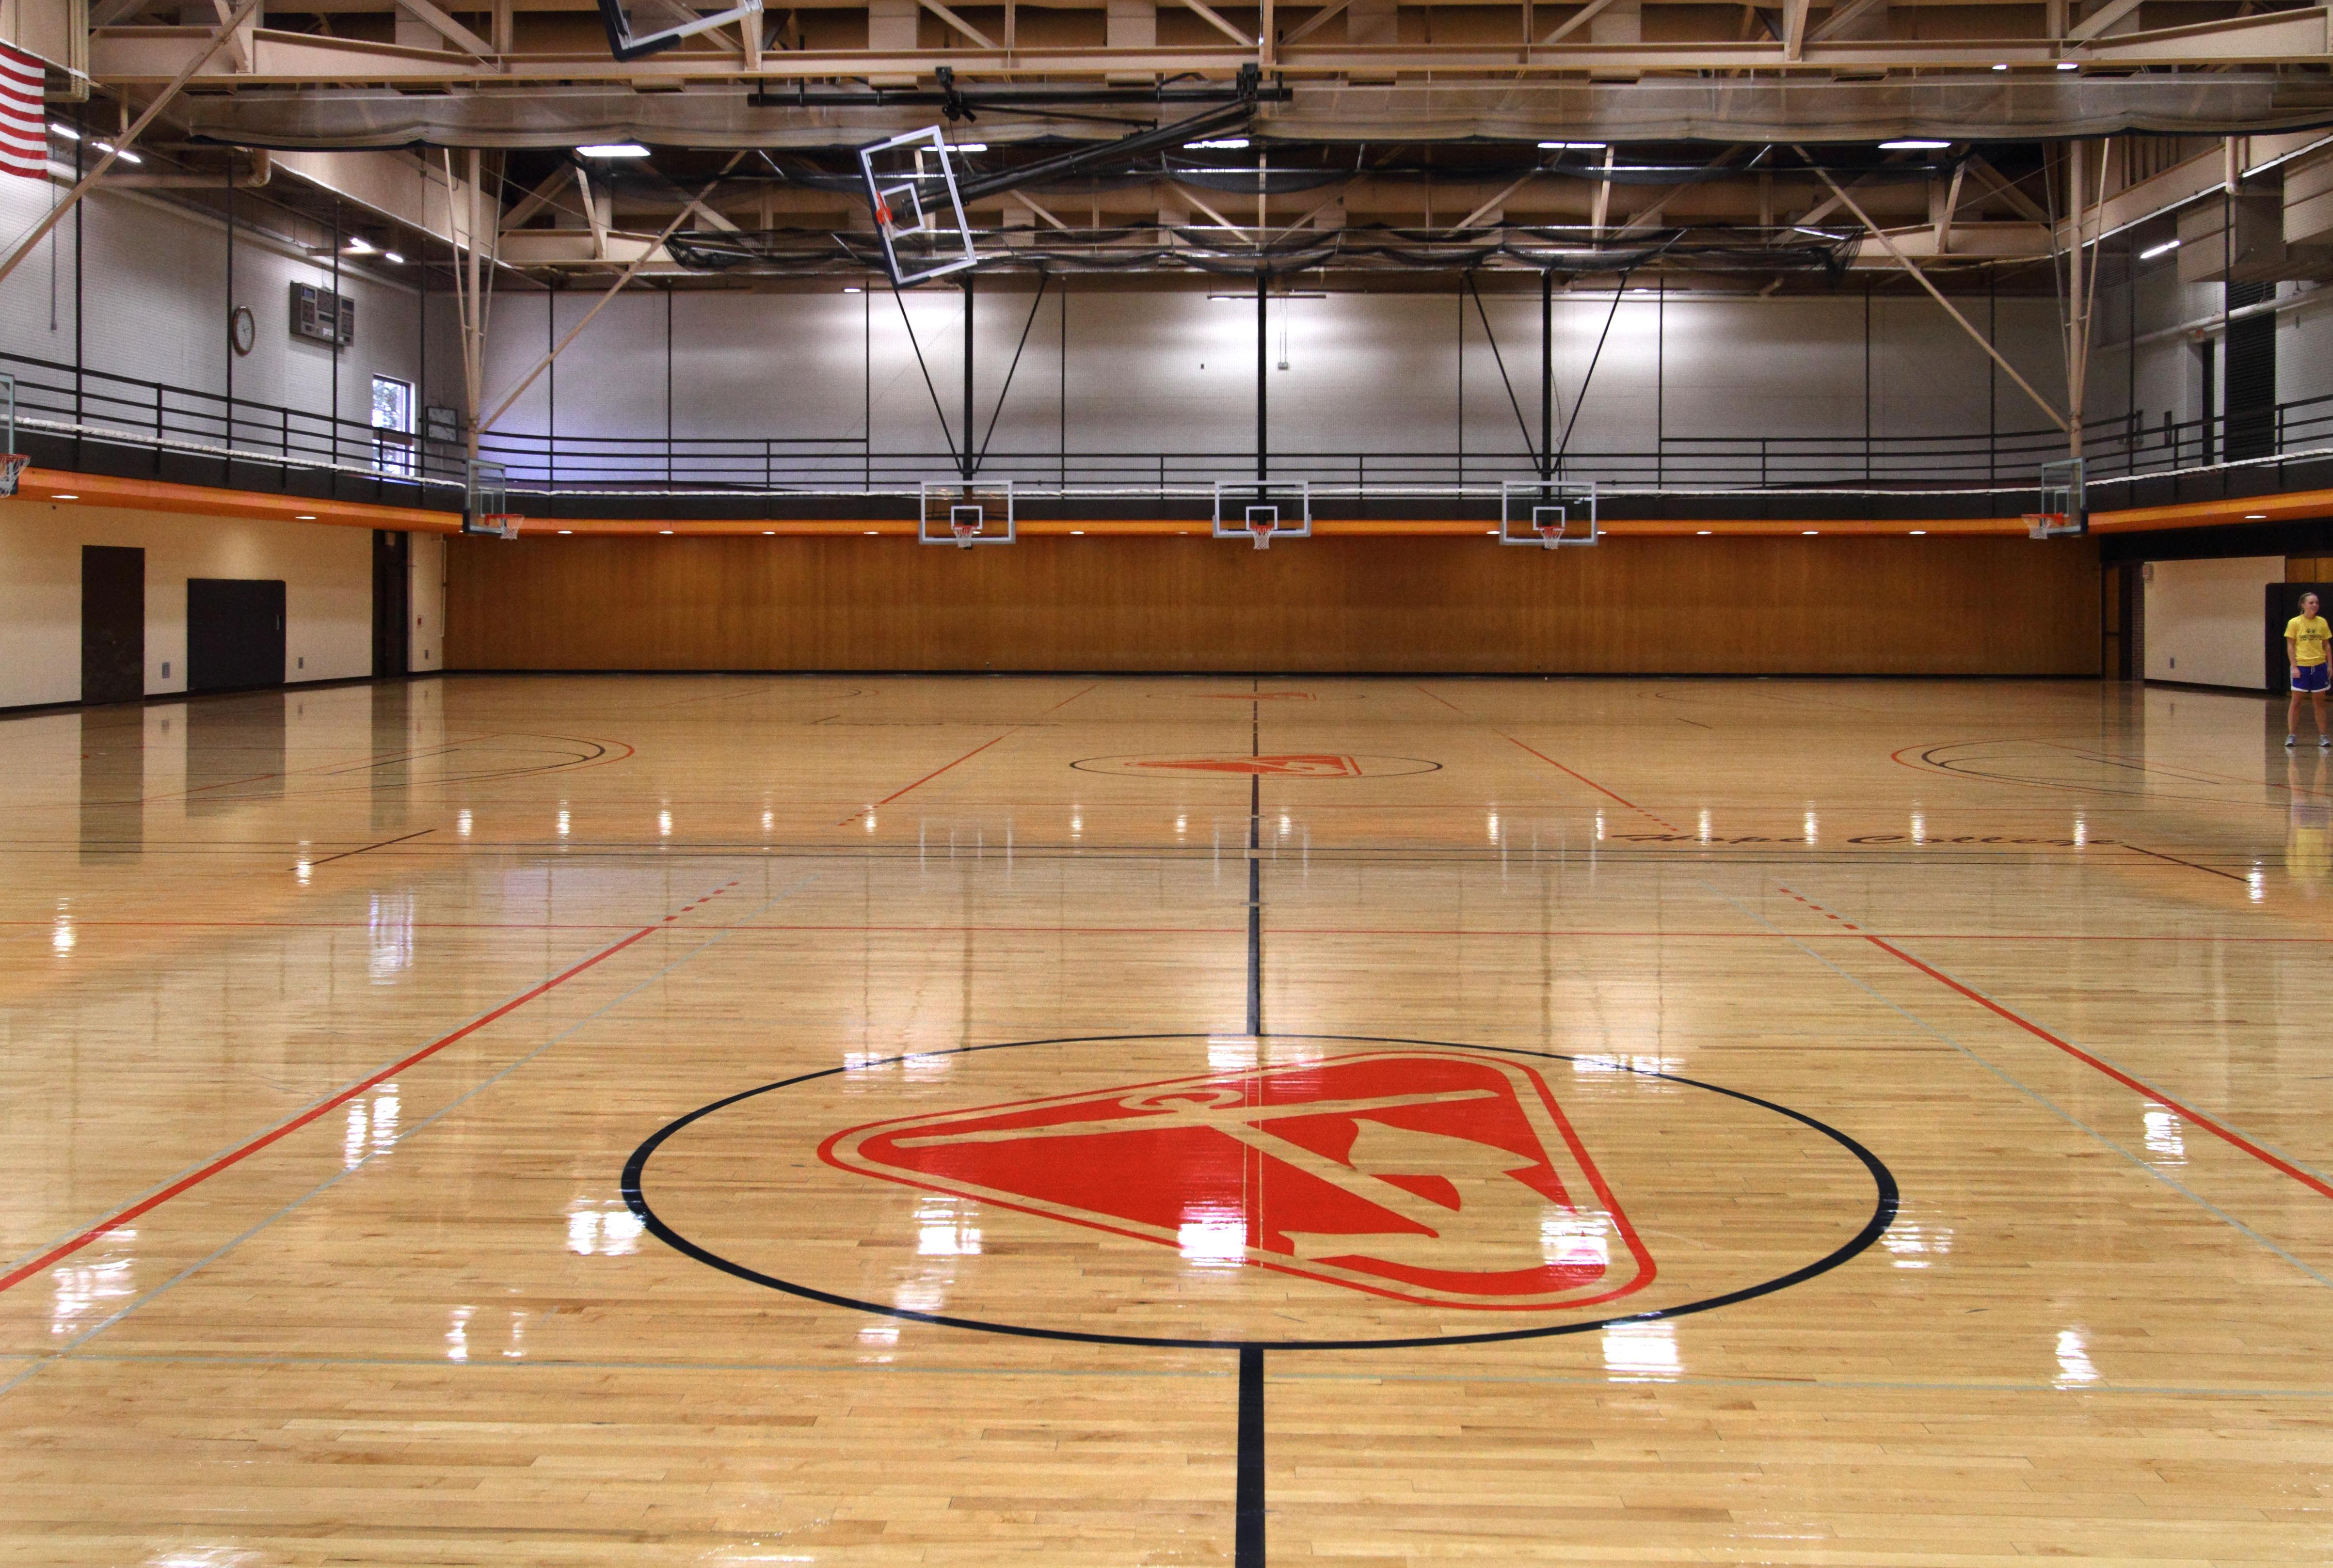 The Dow has three wood-surfaced basketball/volleyball courts.